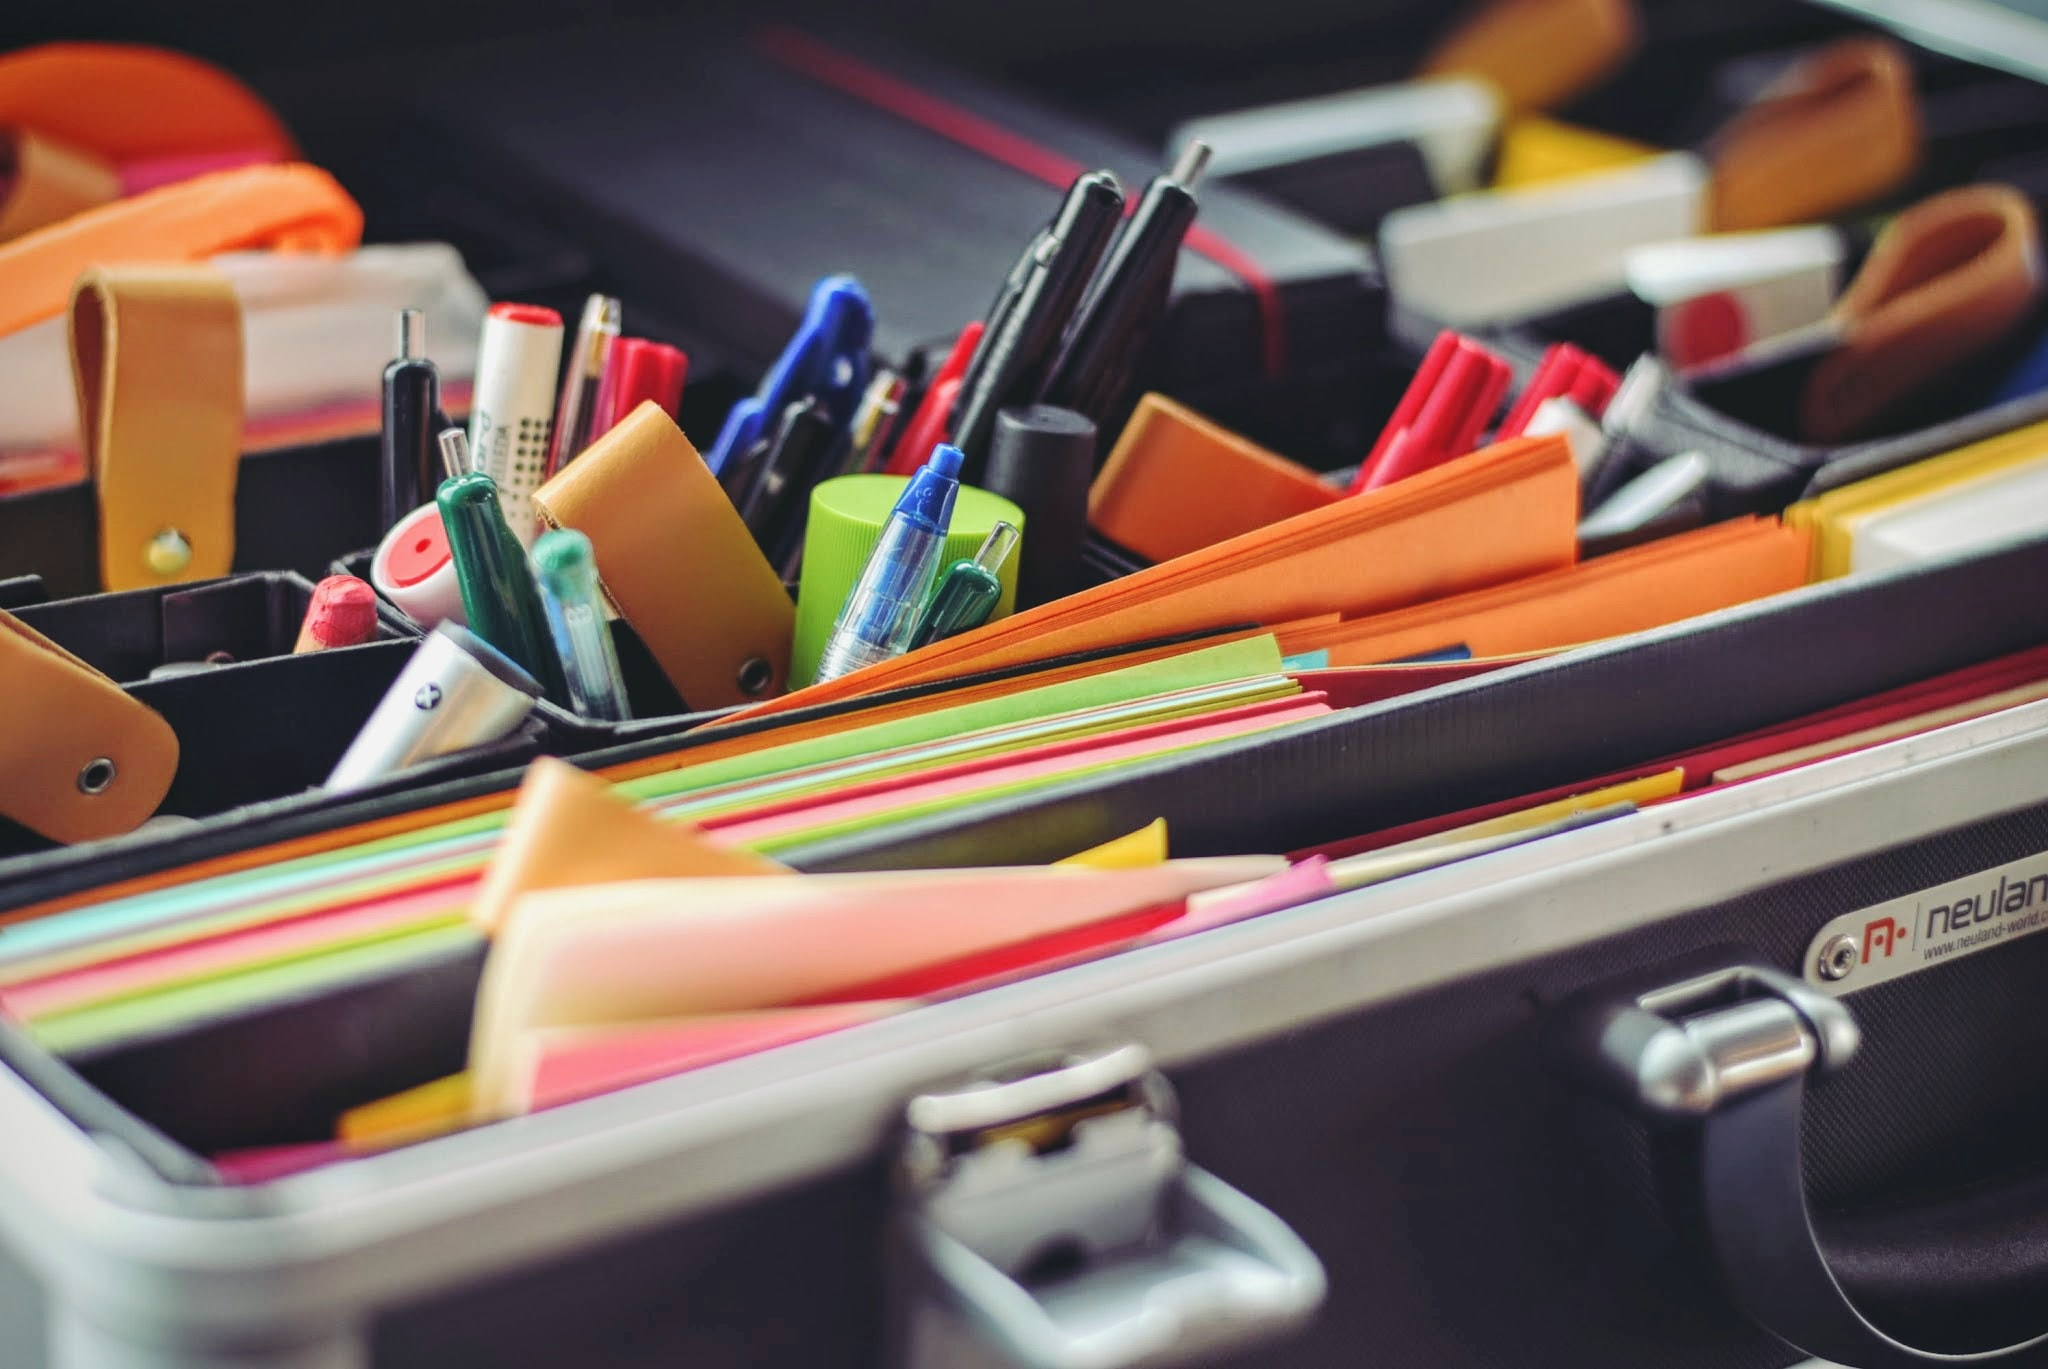 Produce notebooks are school students, wall-paper and paper-white goods